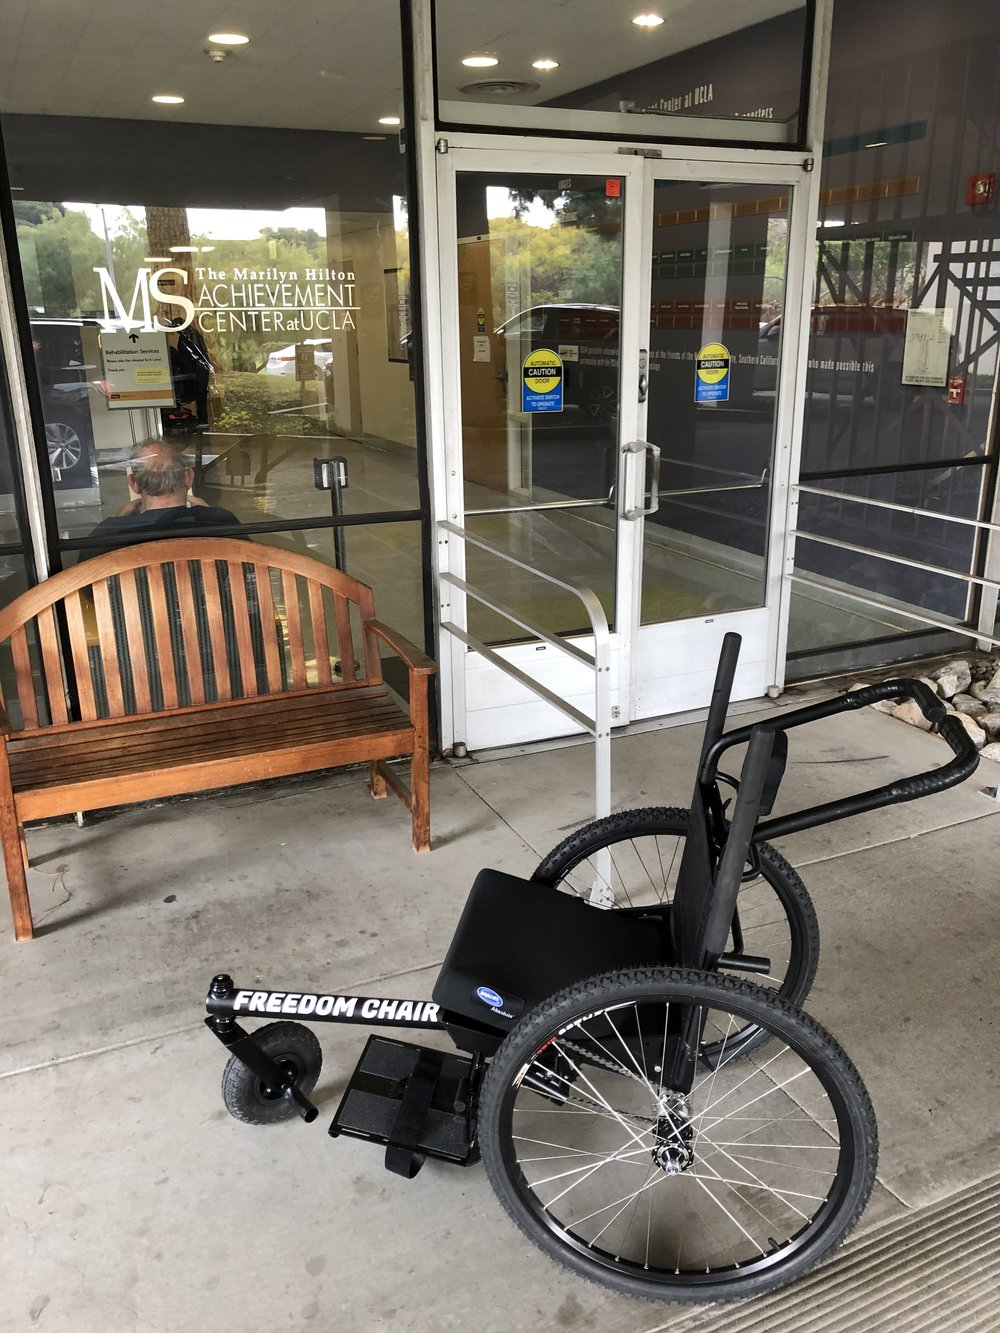 GRIT Freedom Chair at The Marilyn Hilton MS Achievement Center at UCLA